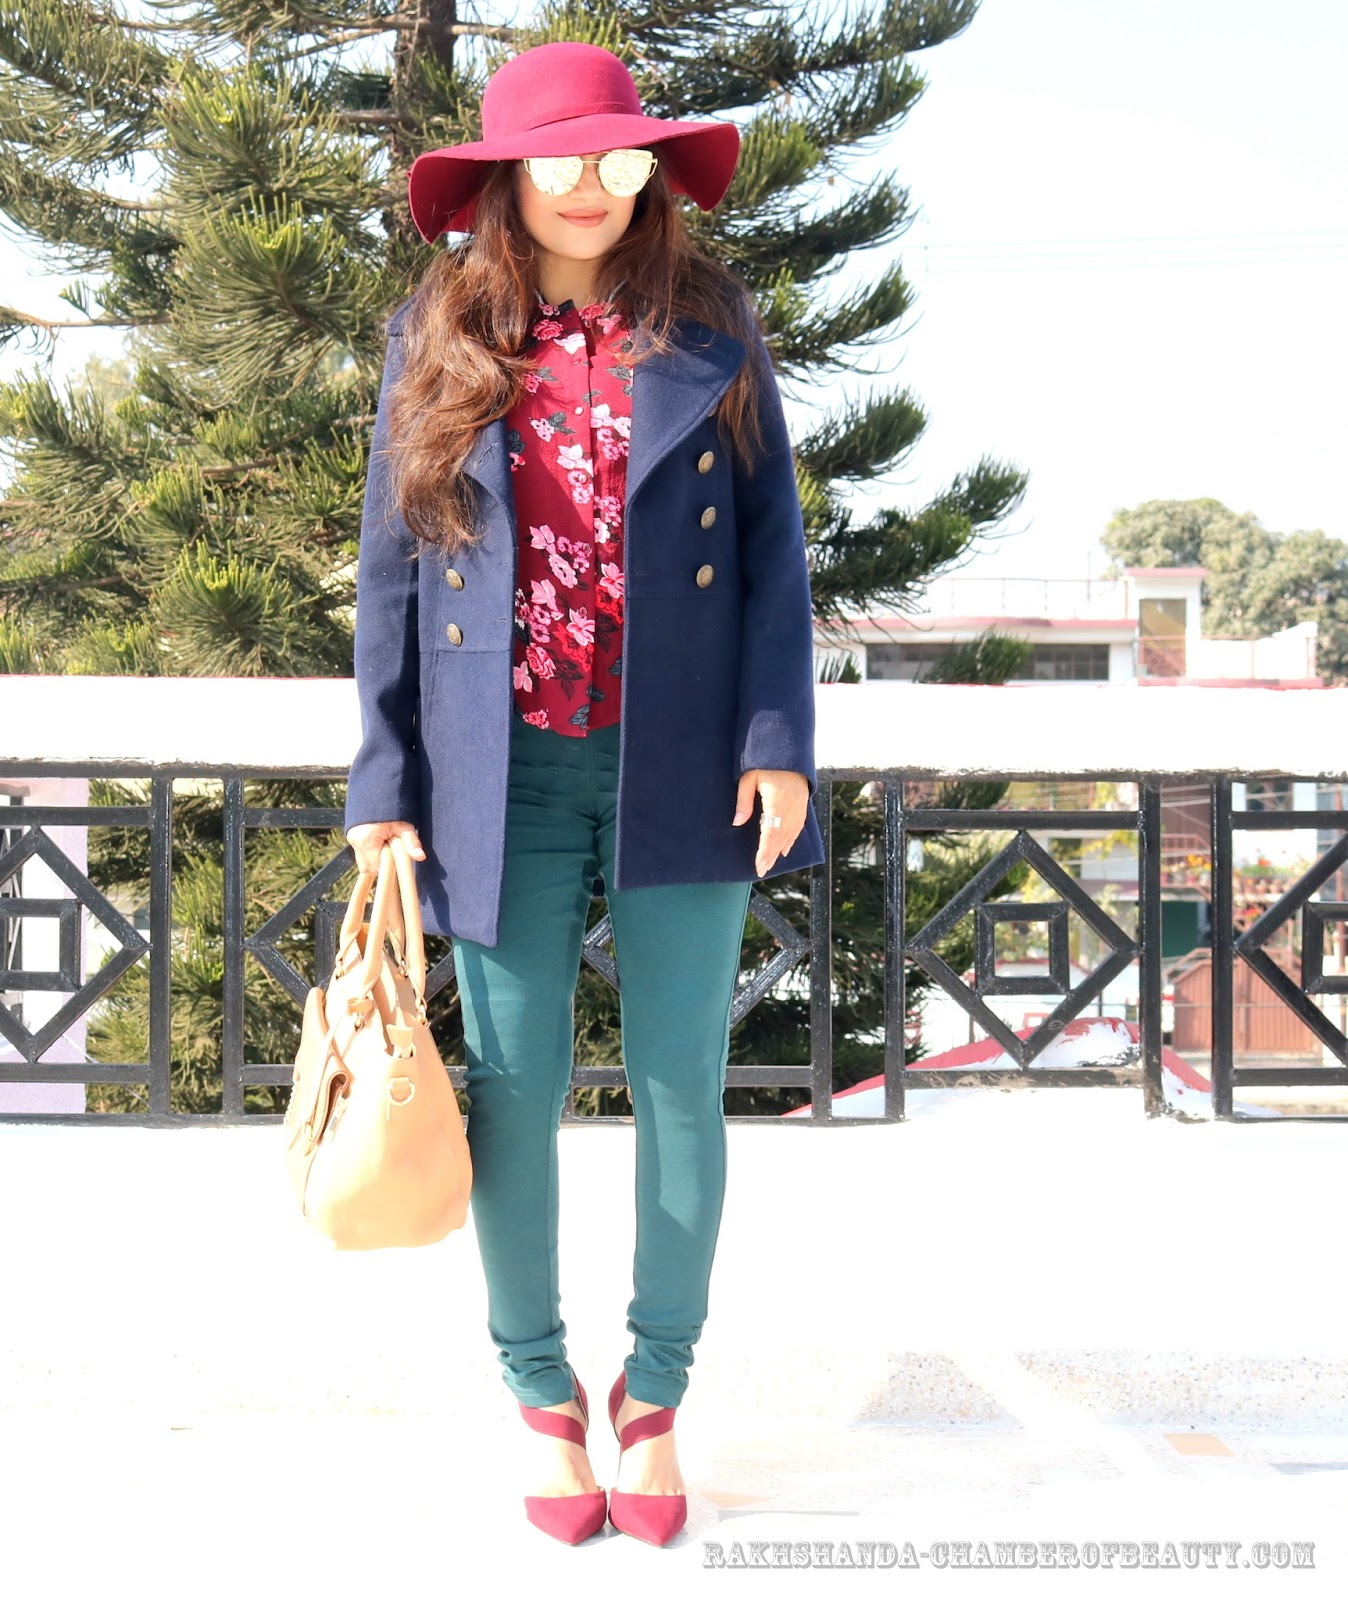 rakhshanda-chamberofbeauty/Max fashion/how to style printed shirt in winter